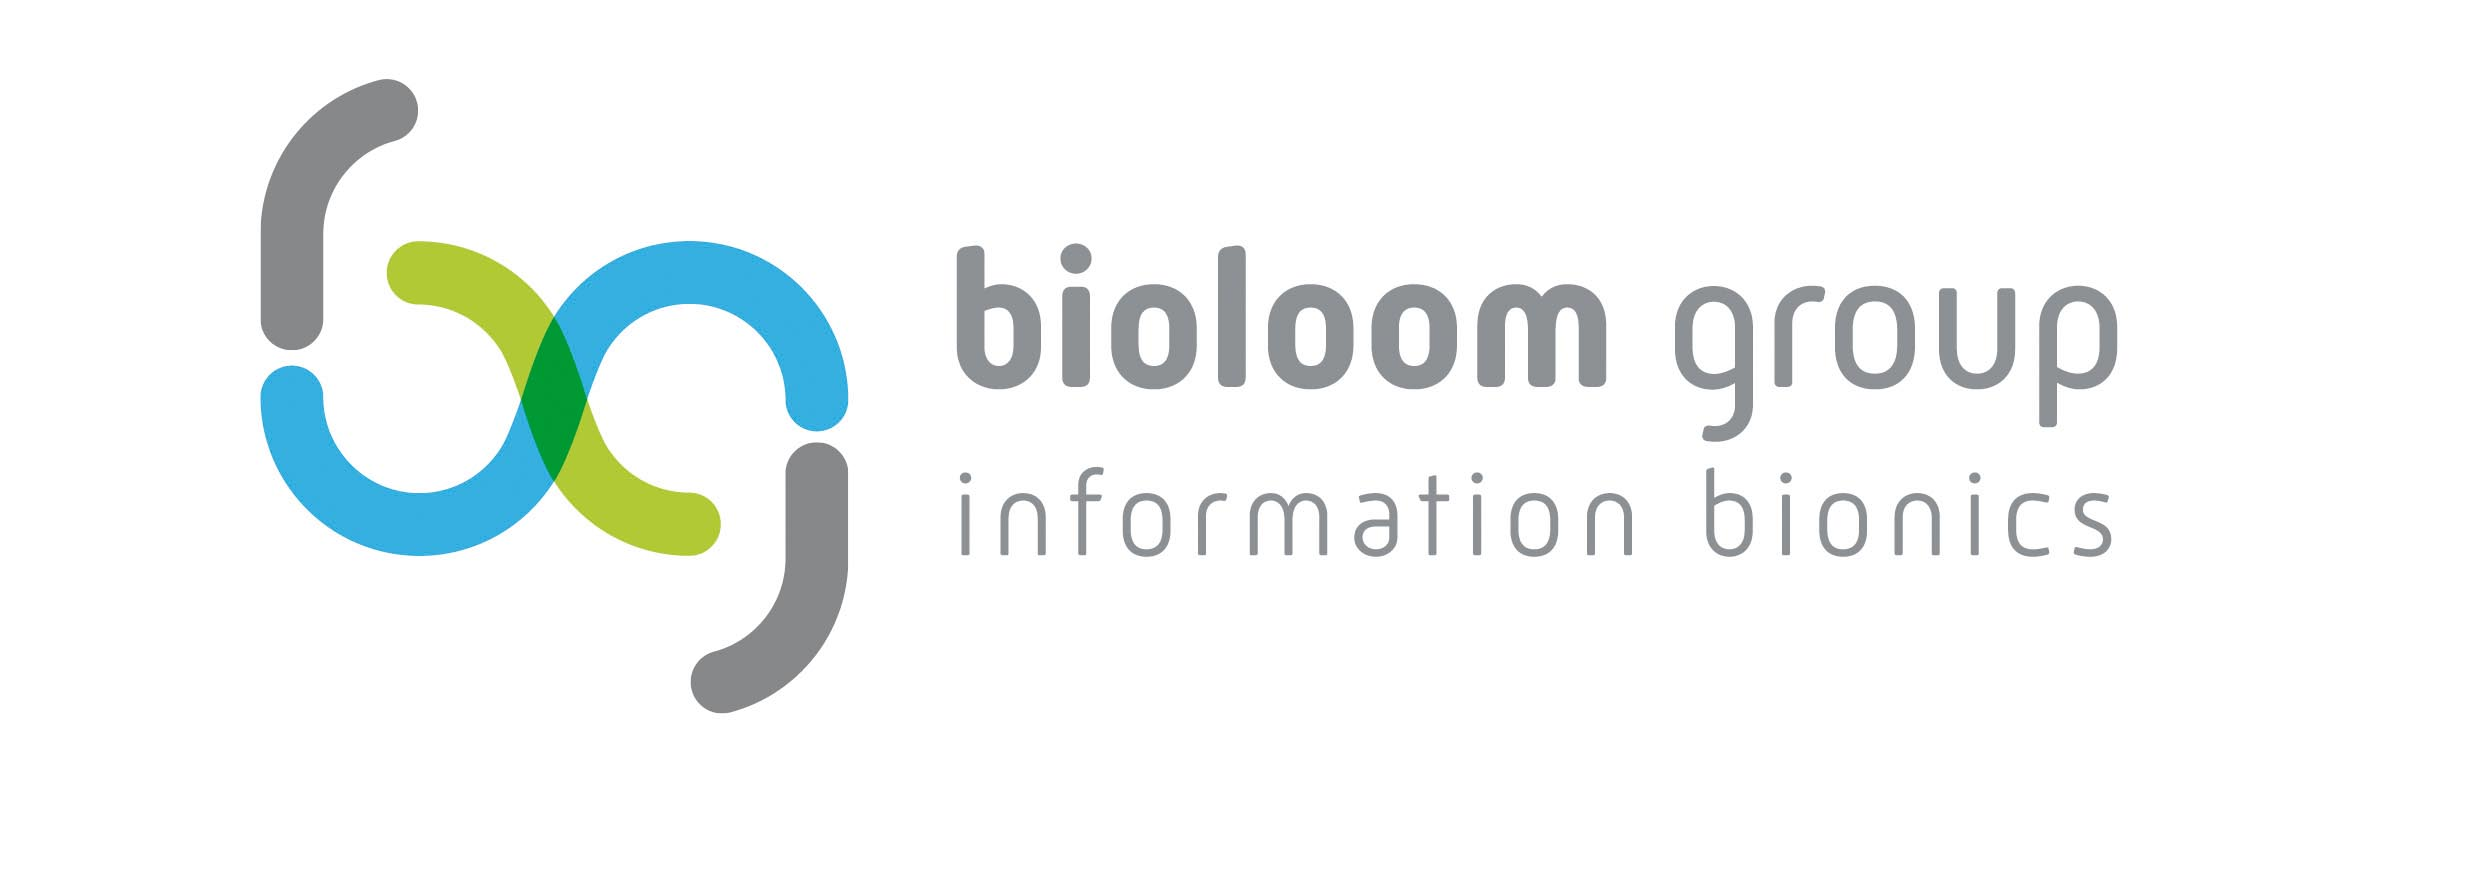 bioloom group Logo